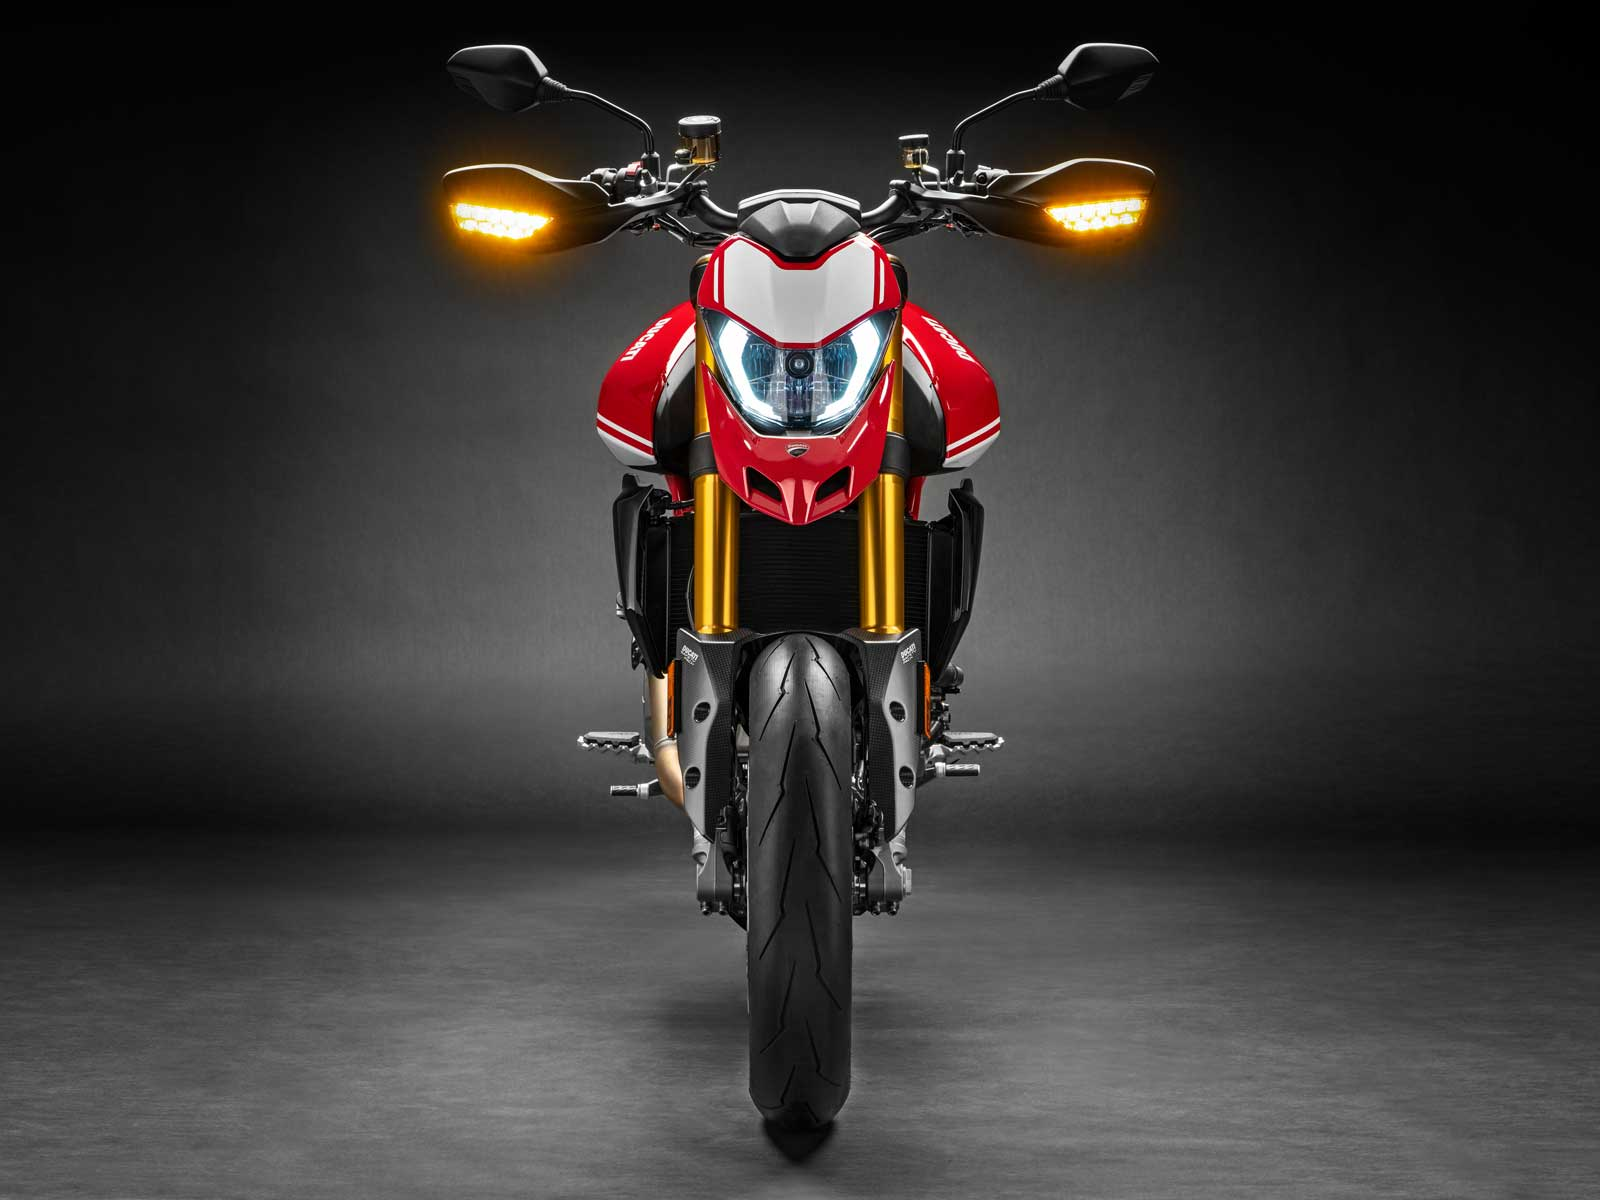 2019 Ducati Hypermotard 950 And 950 Sp First Look Motorcyclist